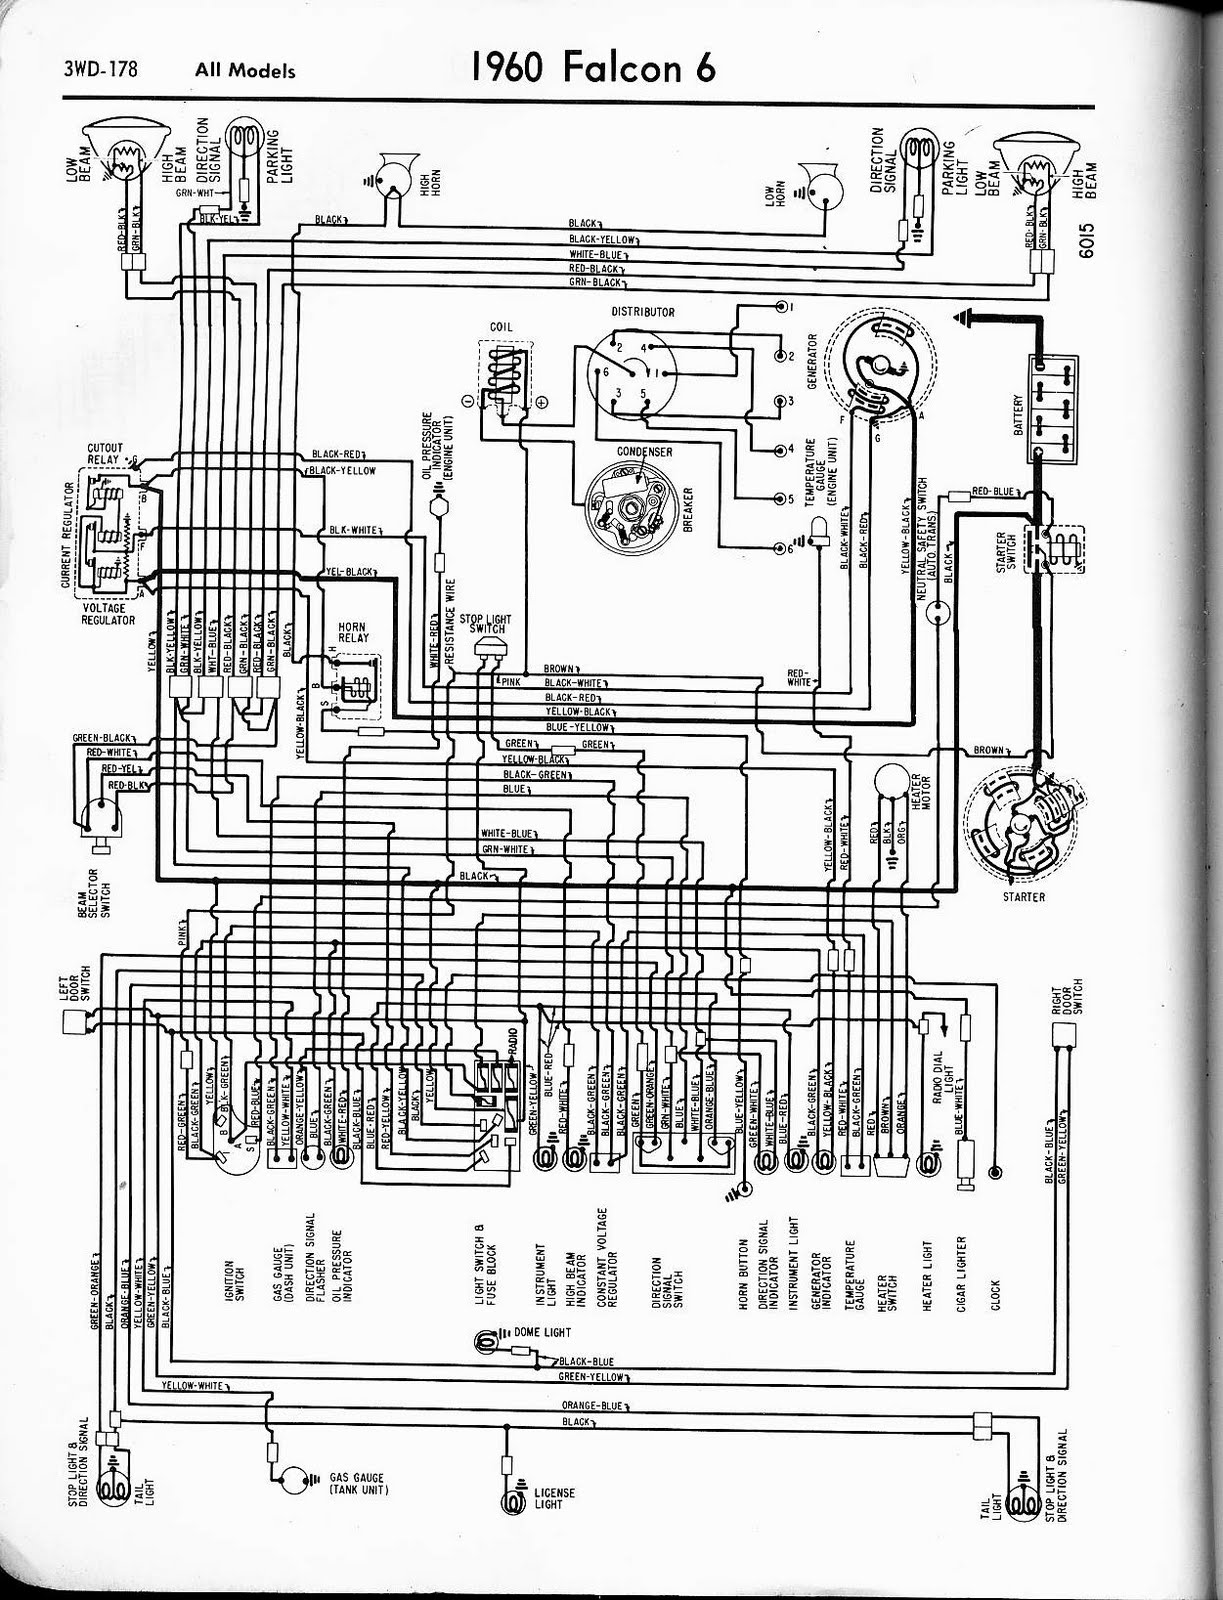 1962 Ford F100 Wiring Diagram 1968 Torino Free For 1956 Fairlane Rh Signaturepedagogies Org Uk 1960 1965